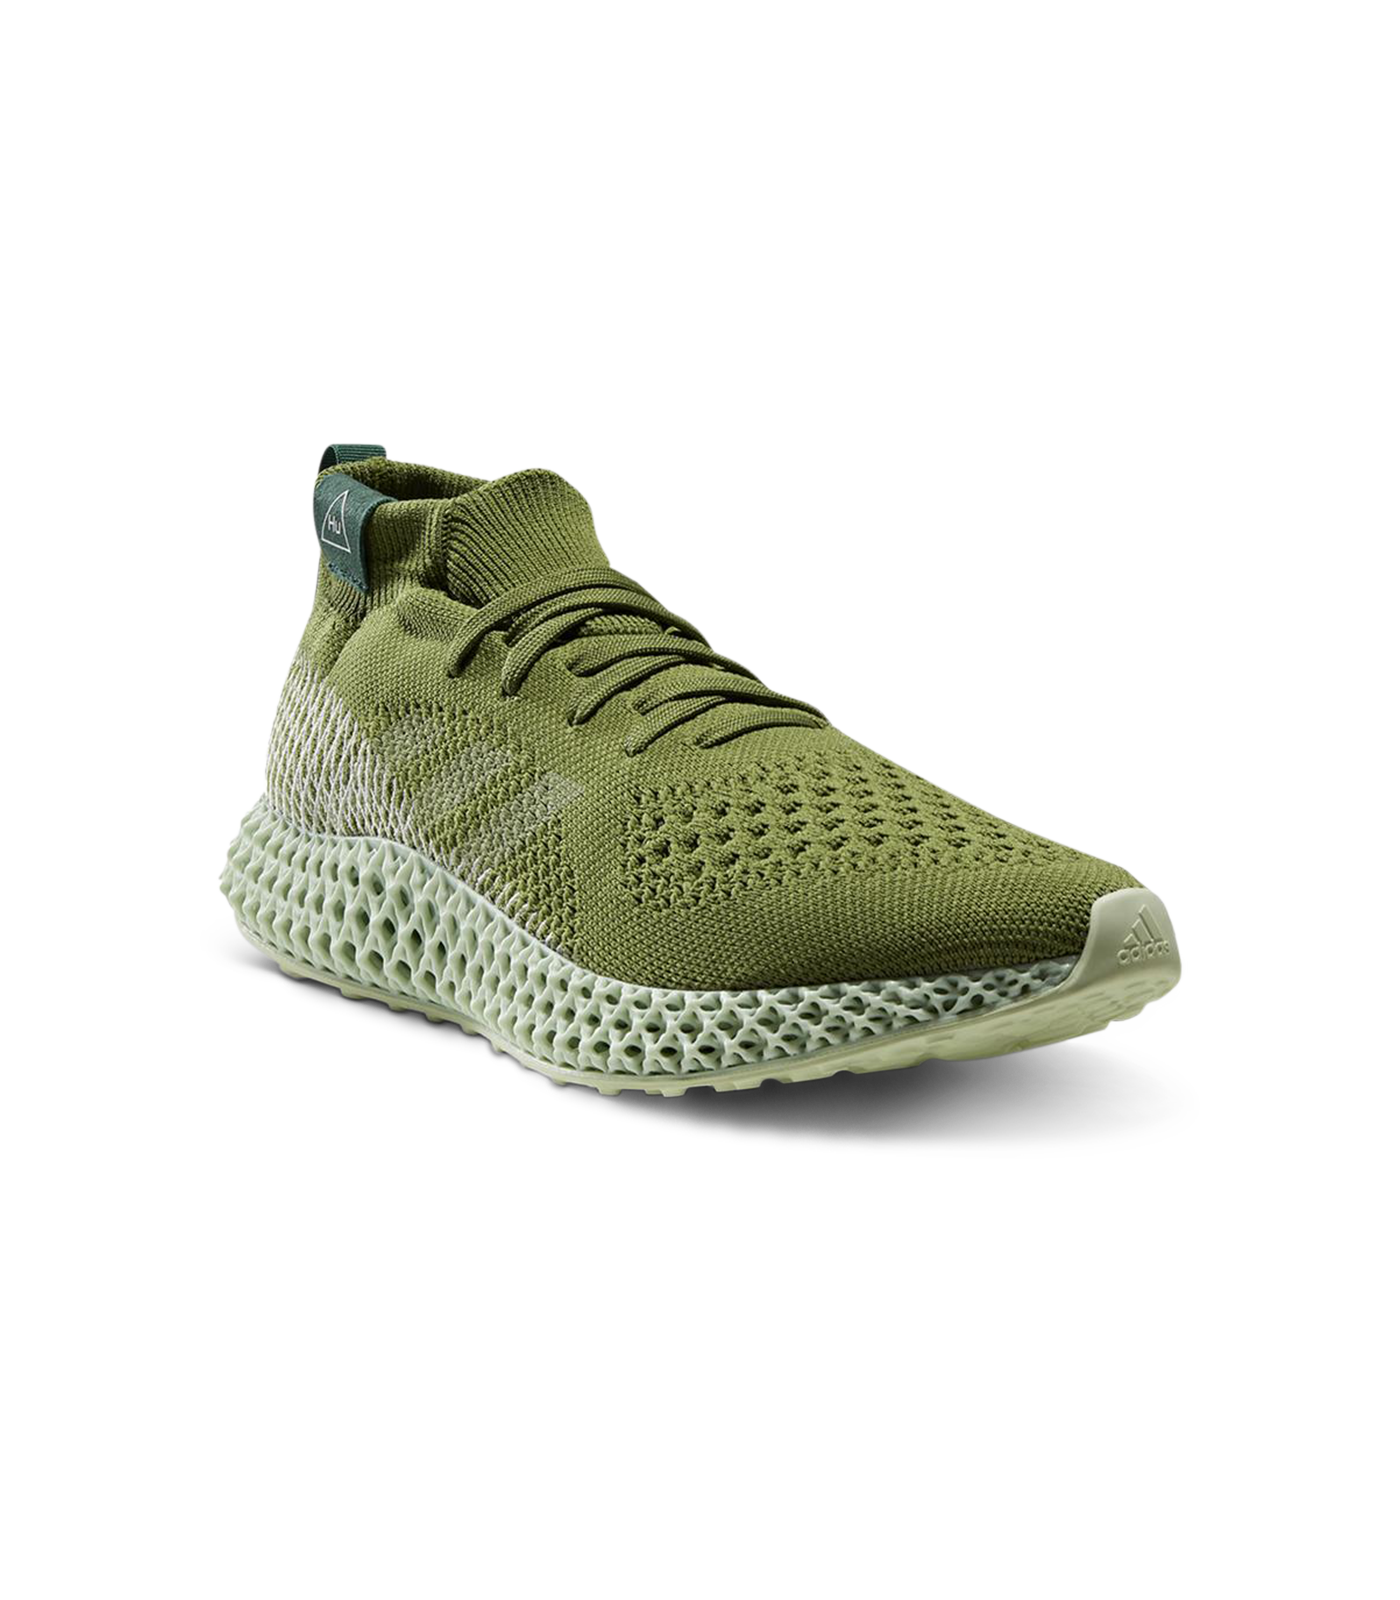 PHARRELL WILLIAMS 4D - OLIVE